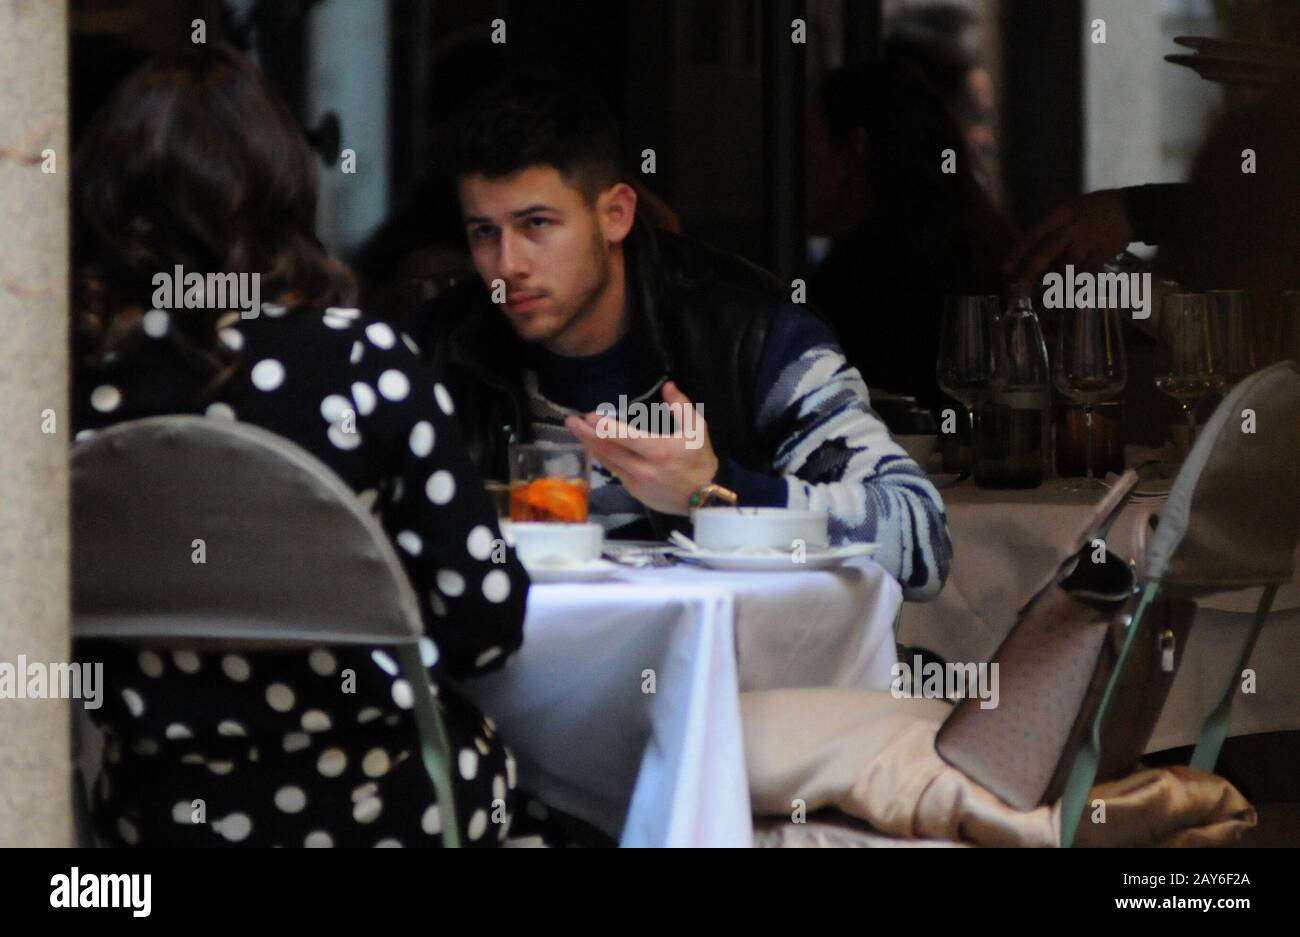 """Milan, Italy. 14th Feb, 2020. Nick Jonas and wife Priyanka Chopra lunch in the center Nick Jonas, one of the 3 brothers of the famous musical group """"JONAS BROTHER"""" in concert this evening in Milan, surprised at lunch in a well-known restaurant in the center together with his wife Priyanka Chopra, actress model and Indian singer, winner of the beauty contest Miss World 2000, first Bollywood actress to have won 5 filmfare Awards in 5 different categories. In 2015 protagonist of the US TV series """"Quantico"""", and he is Goodwill Ambassador of UNICEF. Credit: Independent Photo Agency Srl/Alamy Live N Stock Photo"""